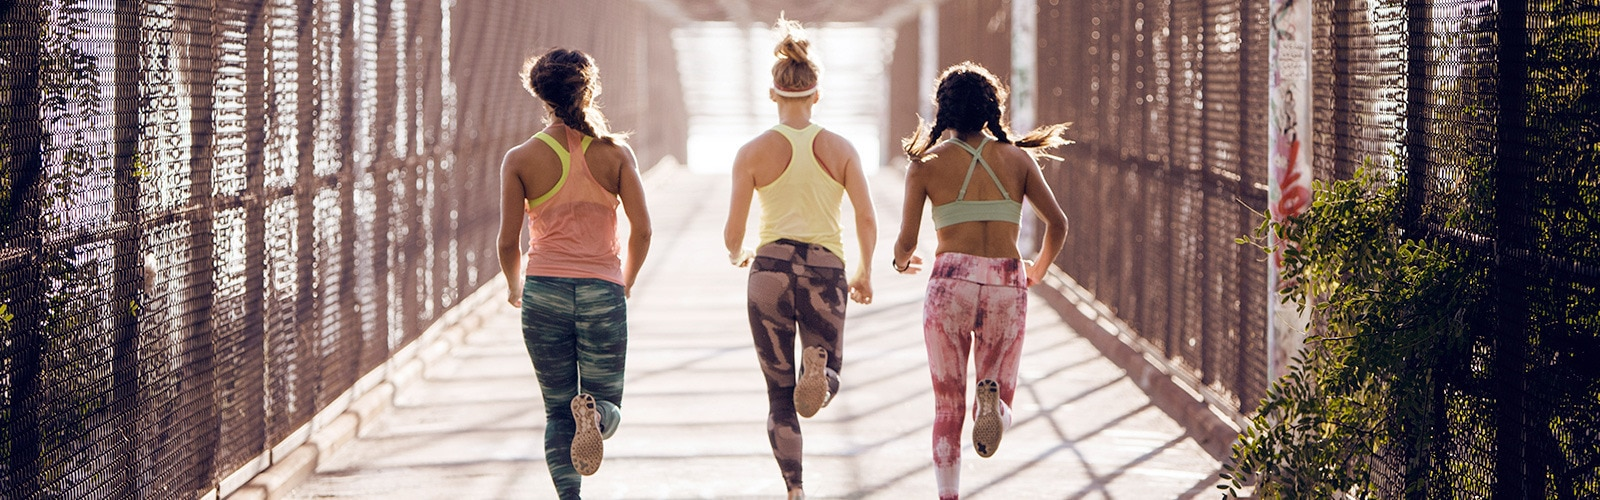 Three women running seen from behind